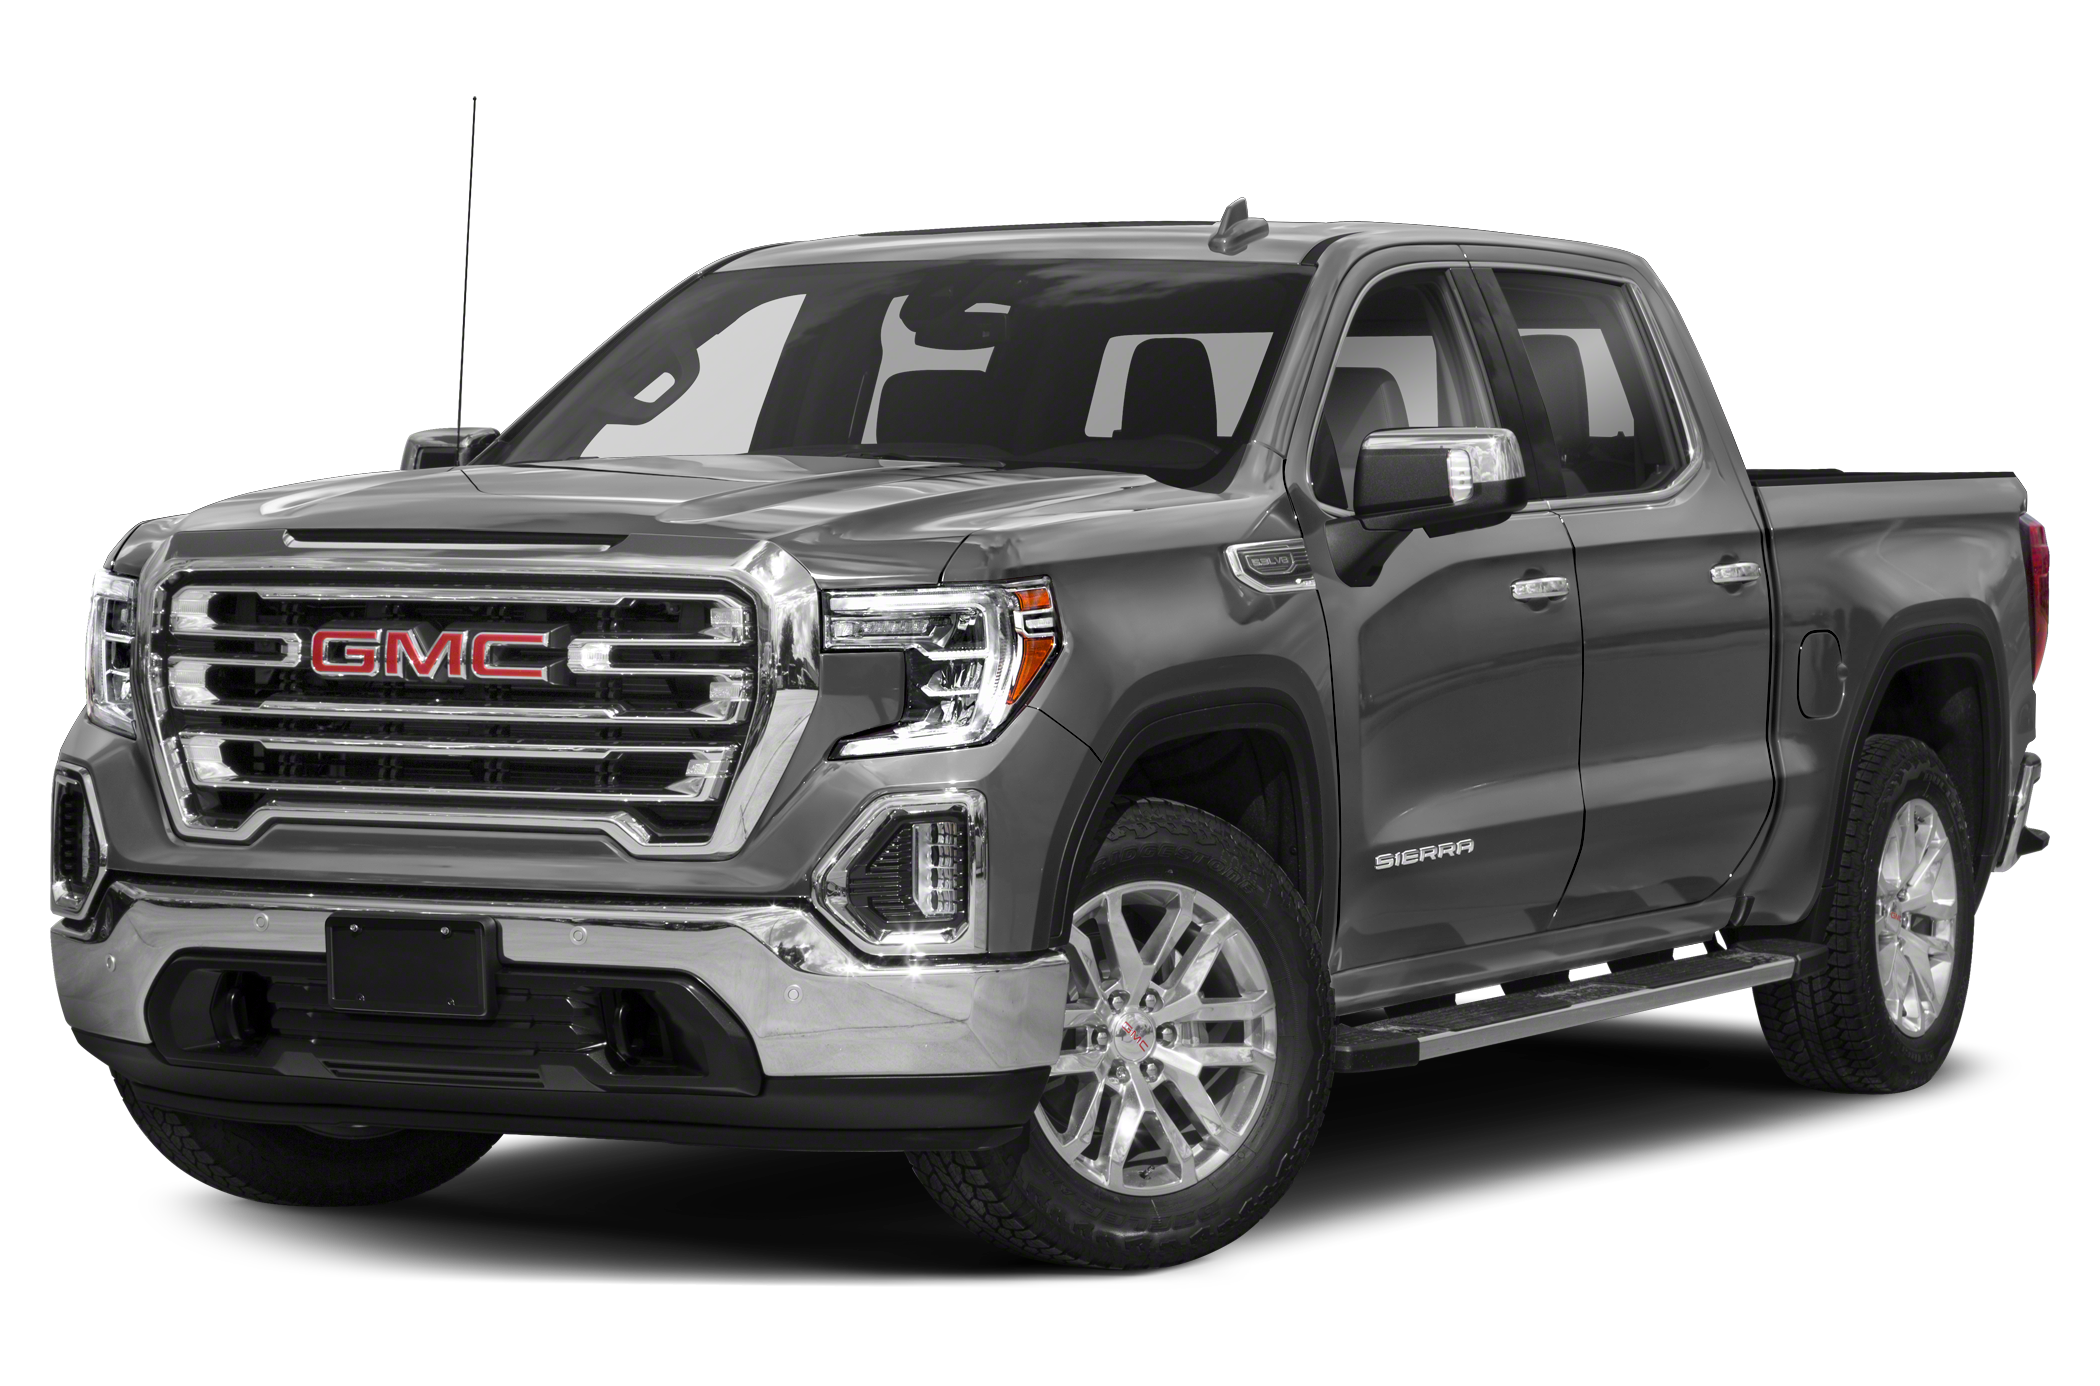 Compare Gmc/Sierra-1500 to Toyota/Tundra